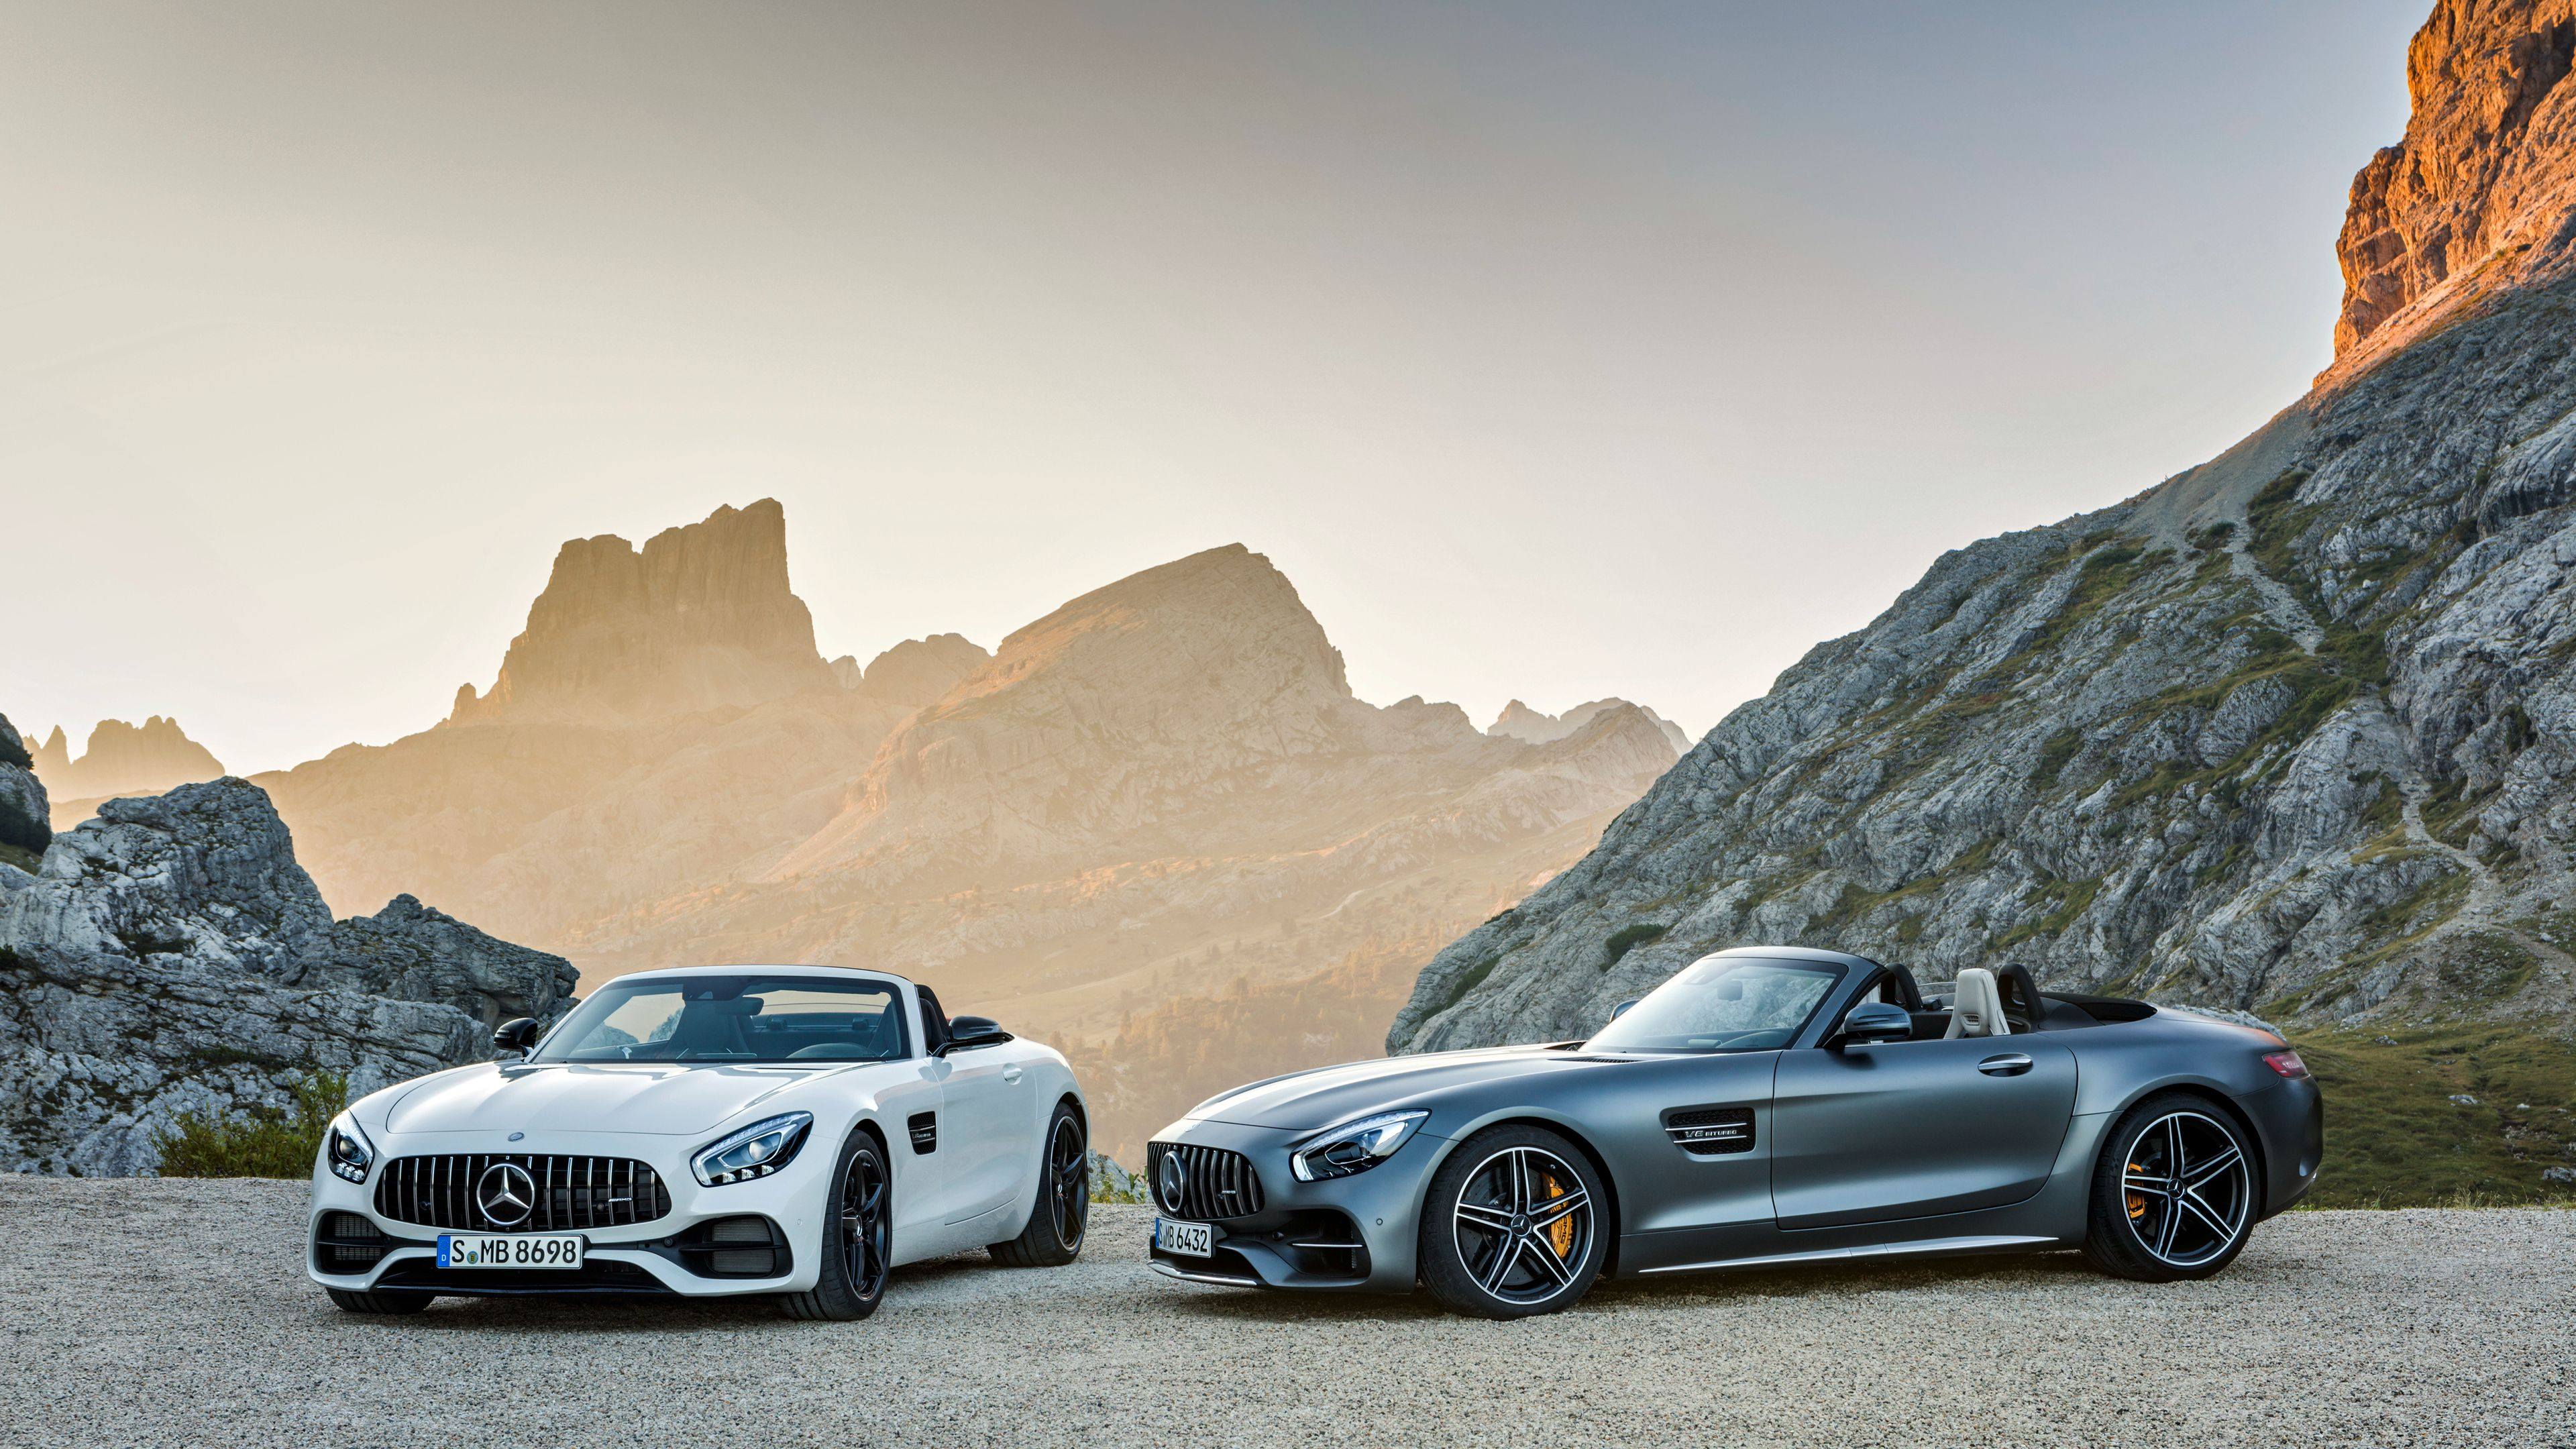 Wallpaper 4k White And Silver Mercedes Benz Amg Gt 2018 Cars